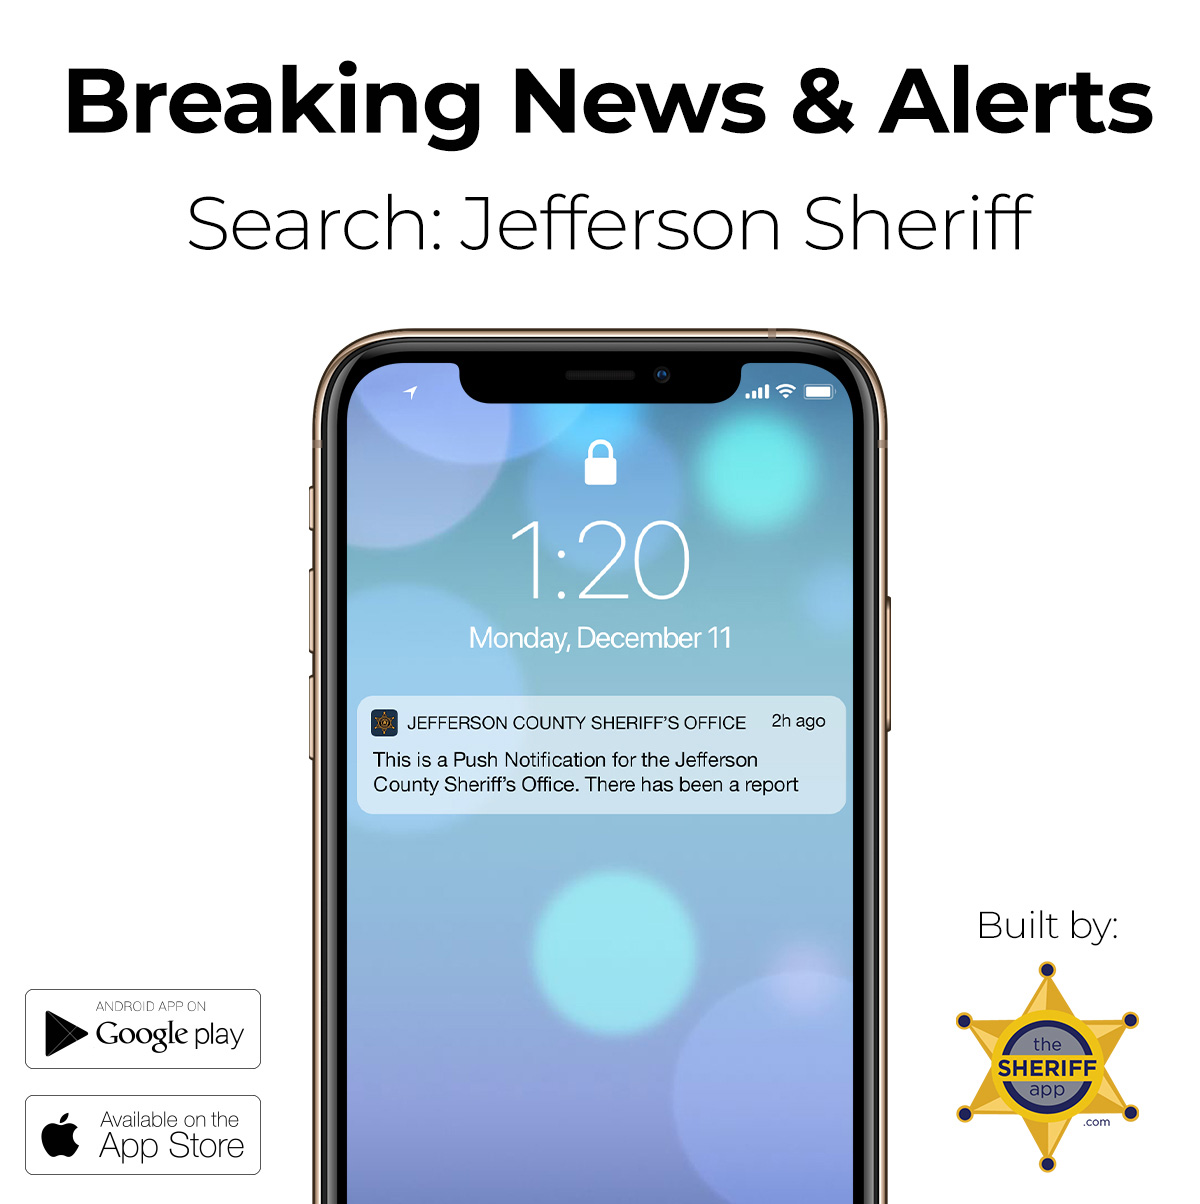 Jefferson-County-Sheriff-Department-Alabama-App-Breaking-News-Alerts